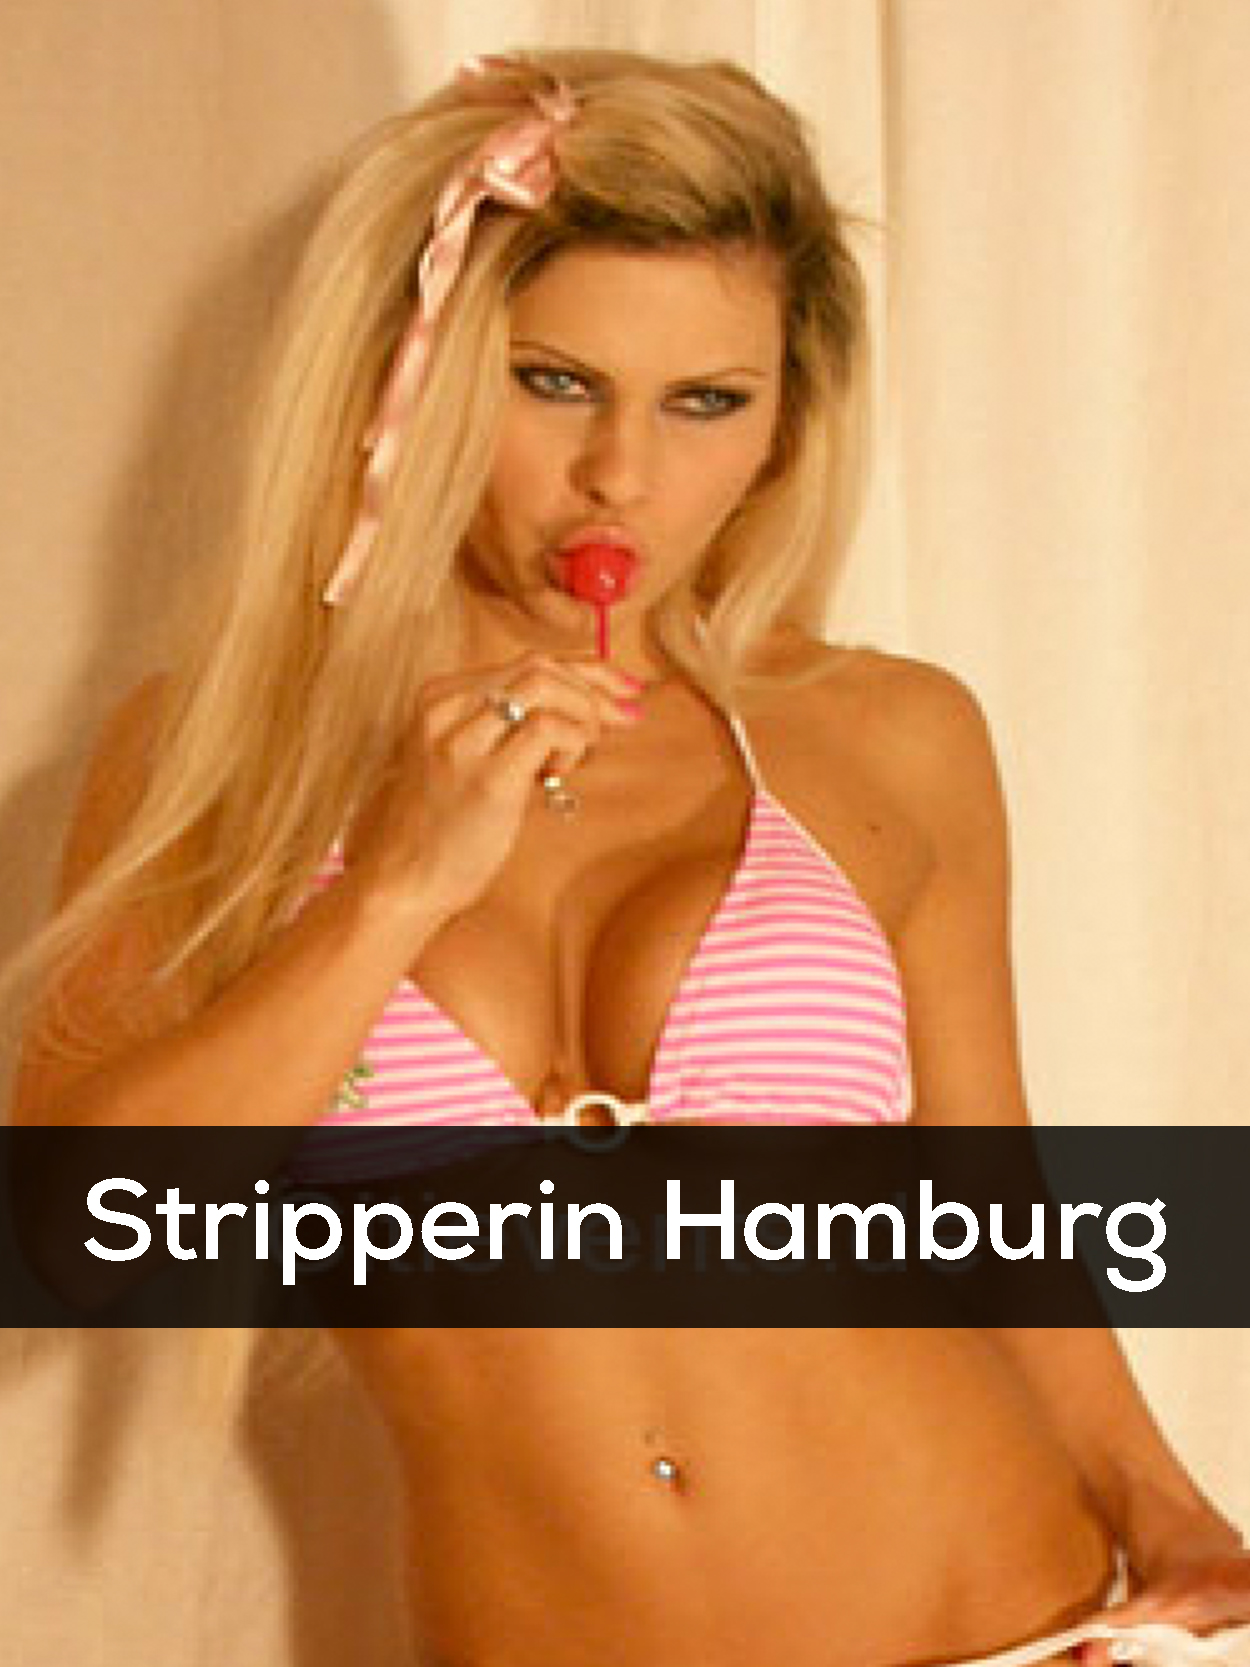 Stripperin Hamburg